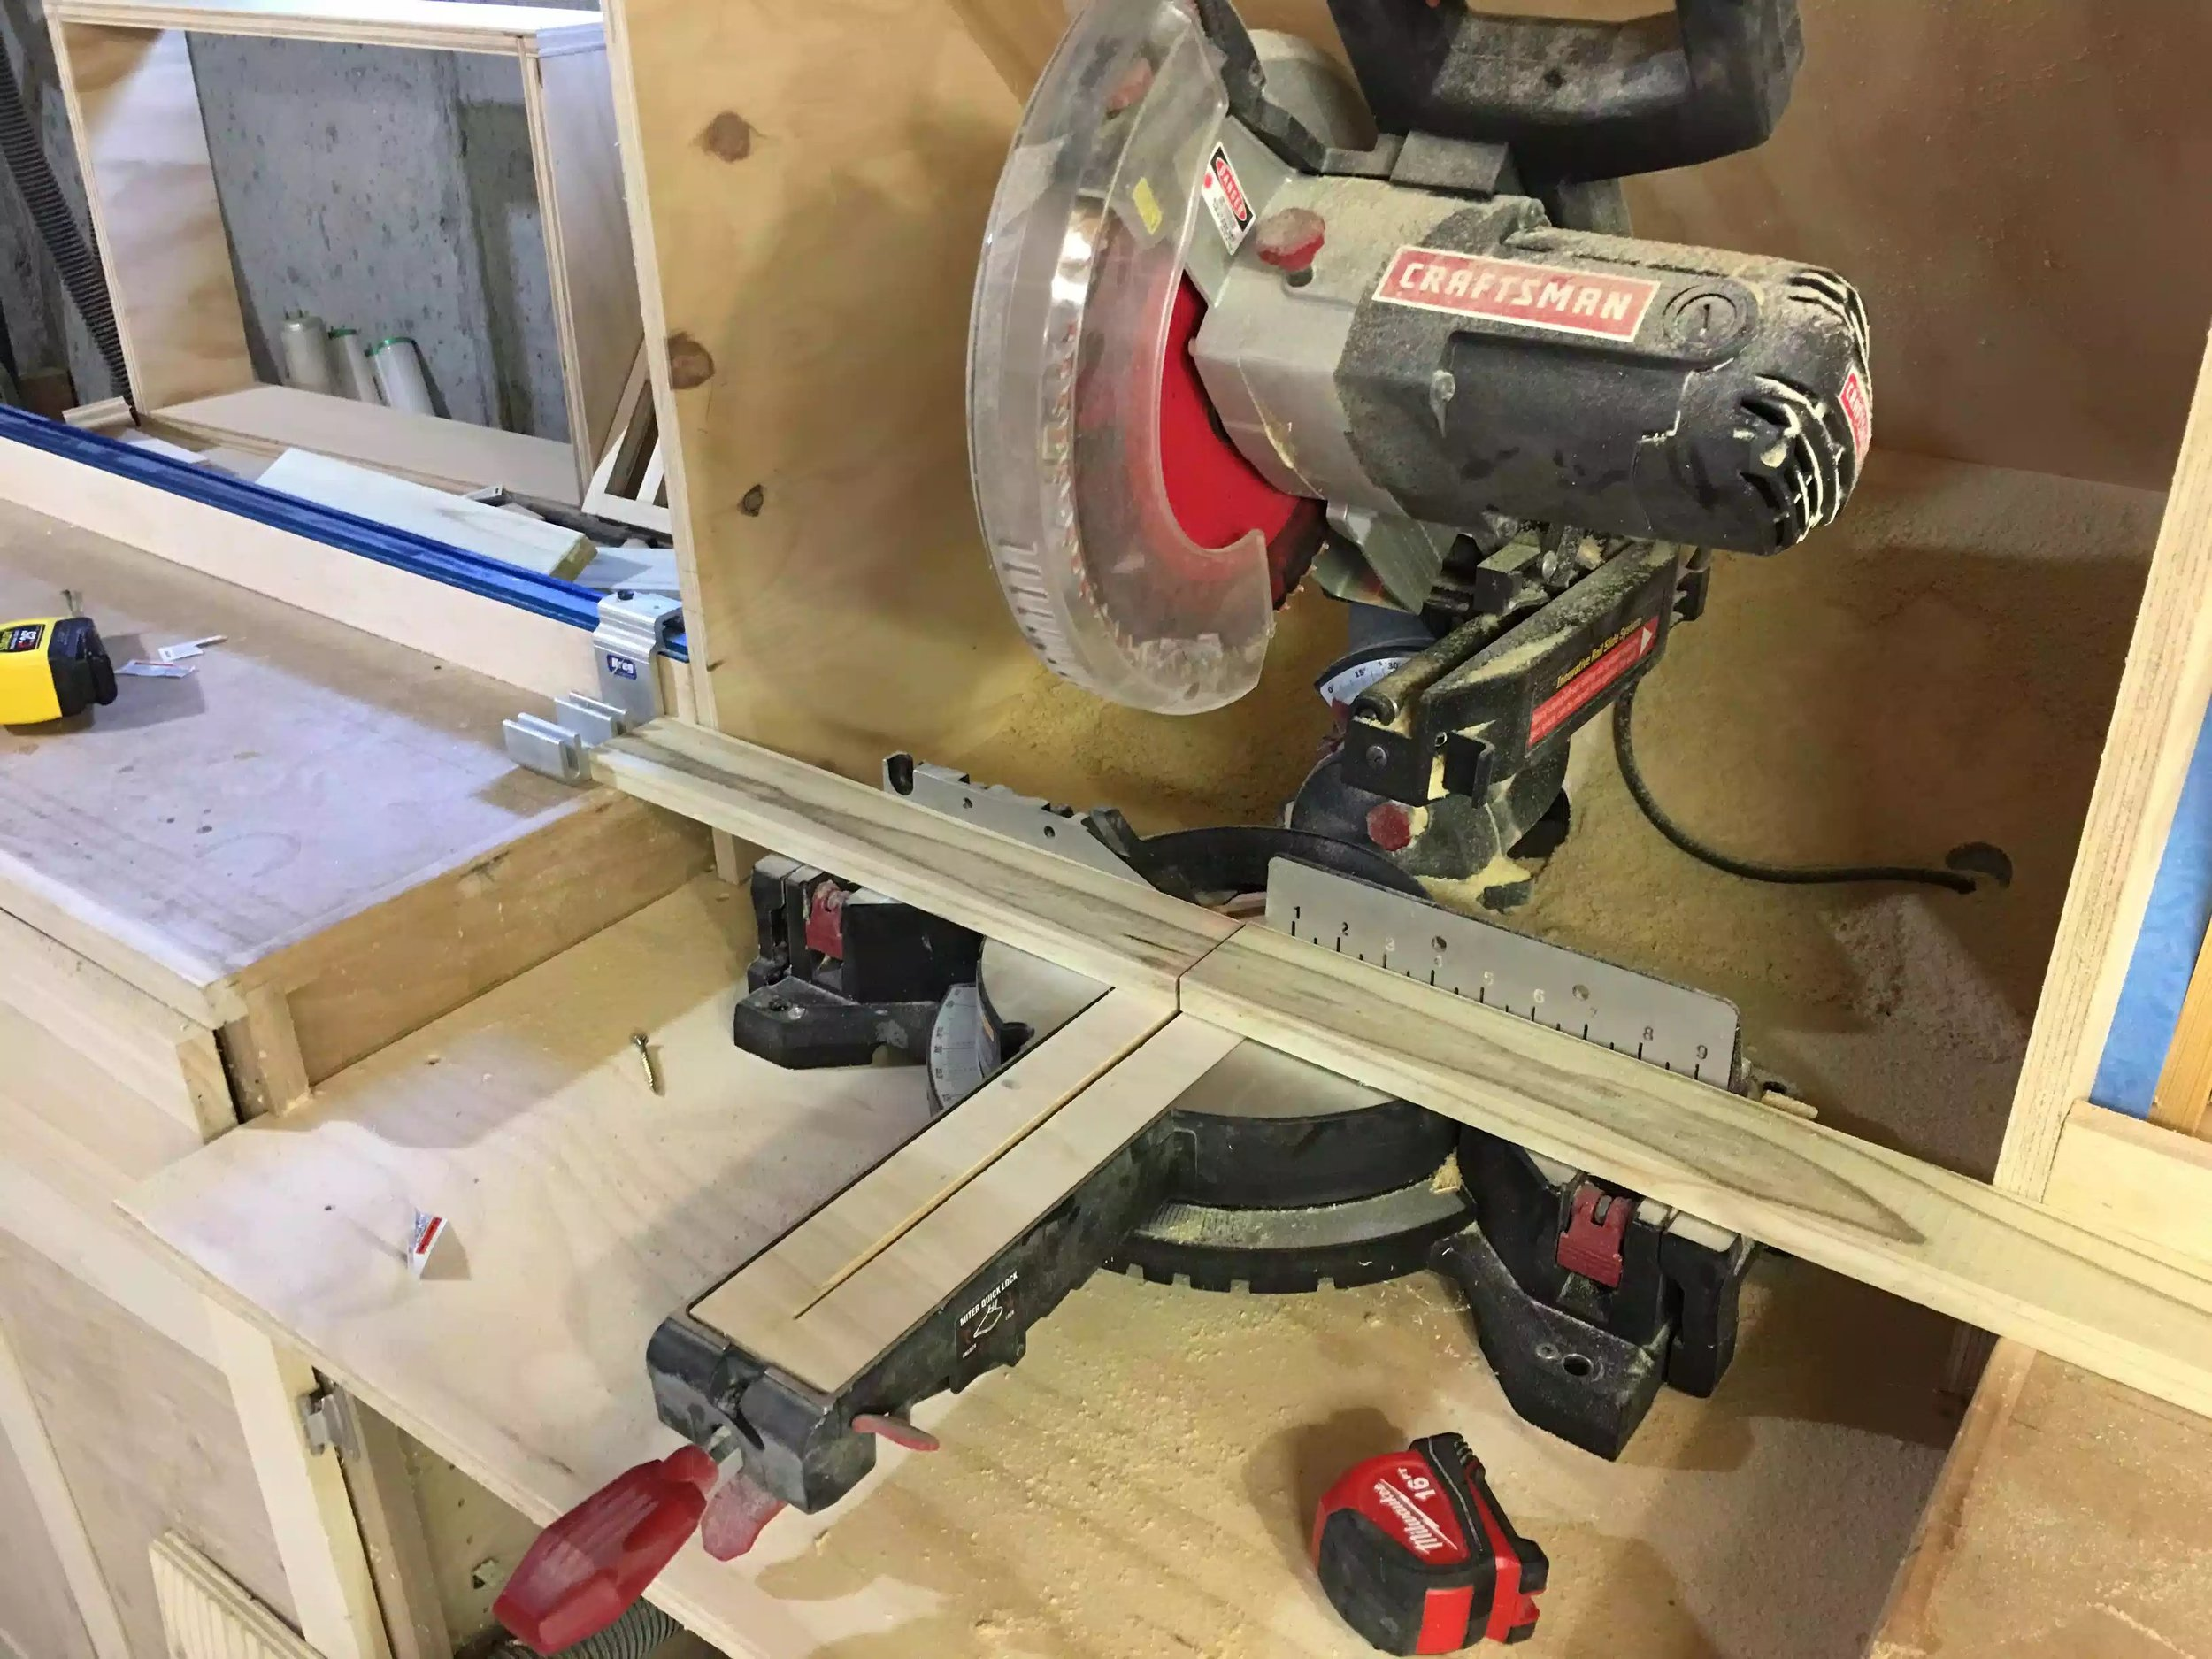 Here you can see the chop saw set-up using my kreg production stop that was on my top-trak on the miter saw station, this is a dream for doing repetitive cross-cuts